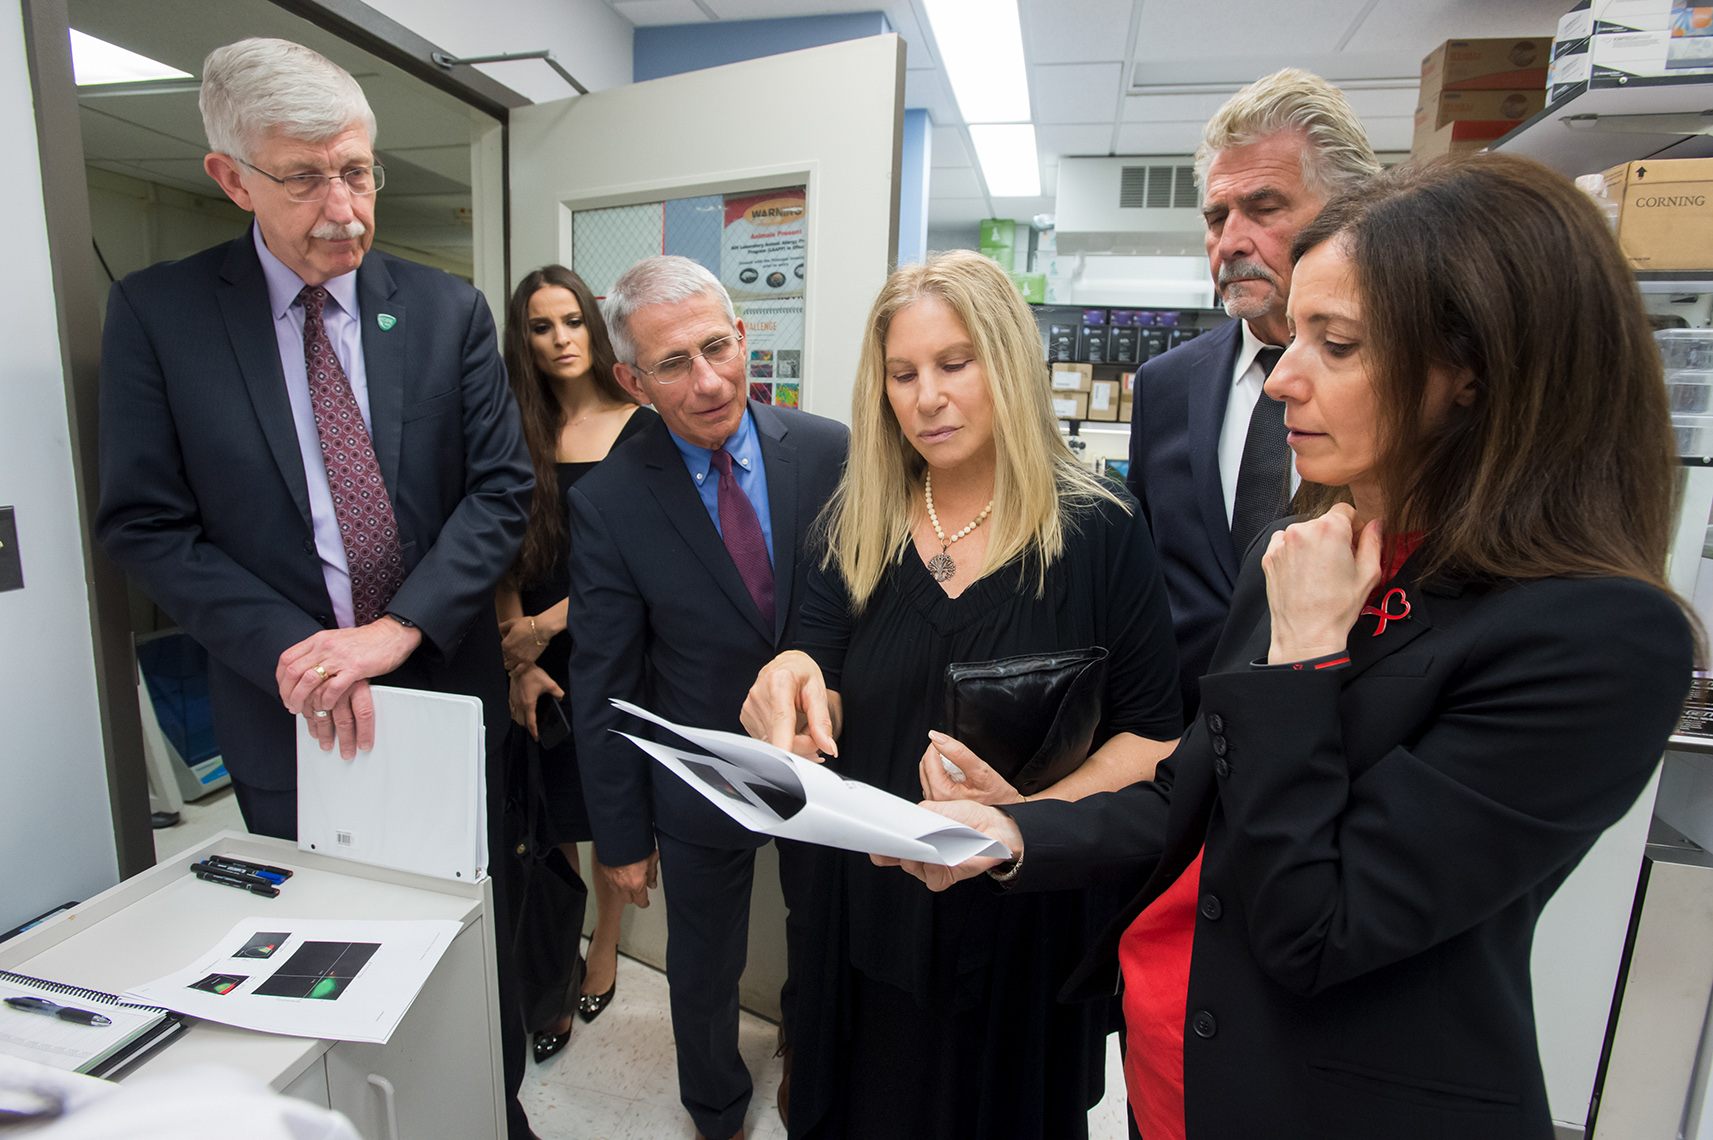 Barbra Streisand, James Brolin, Dr. Anthony Fauci, Dr. Francis Collins